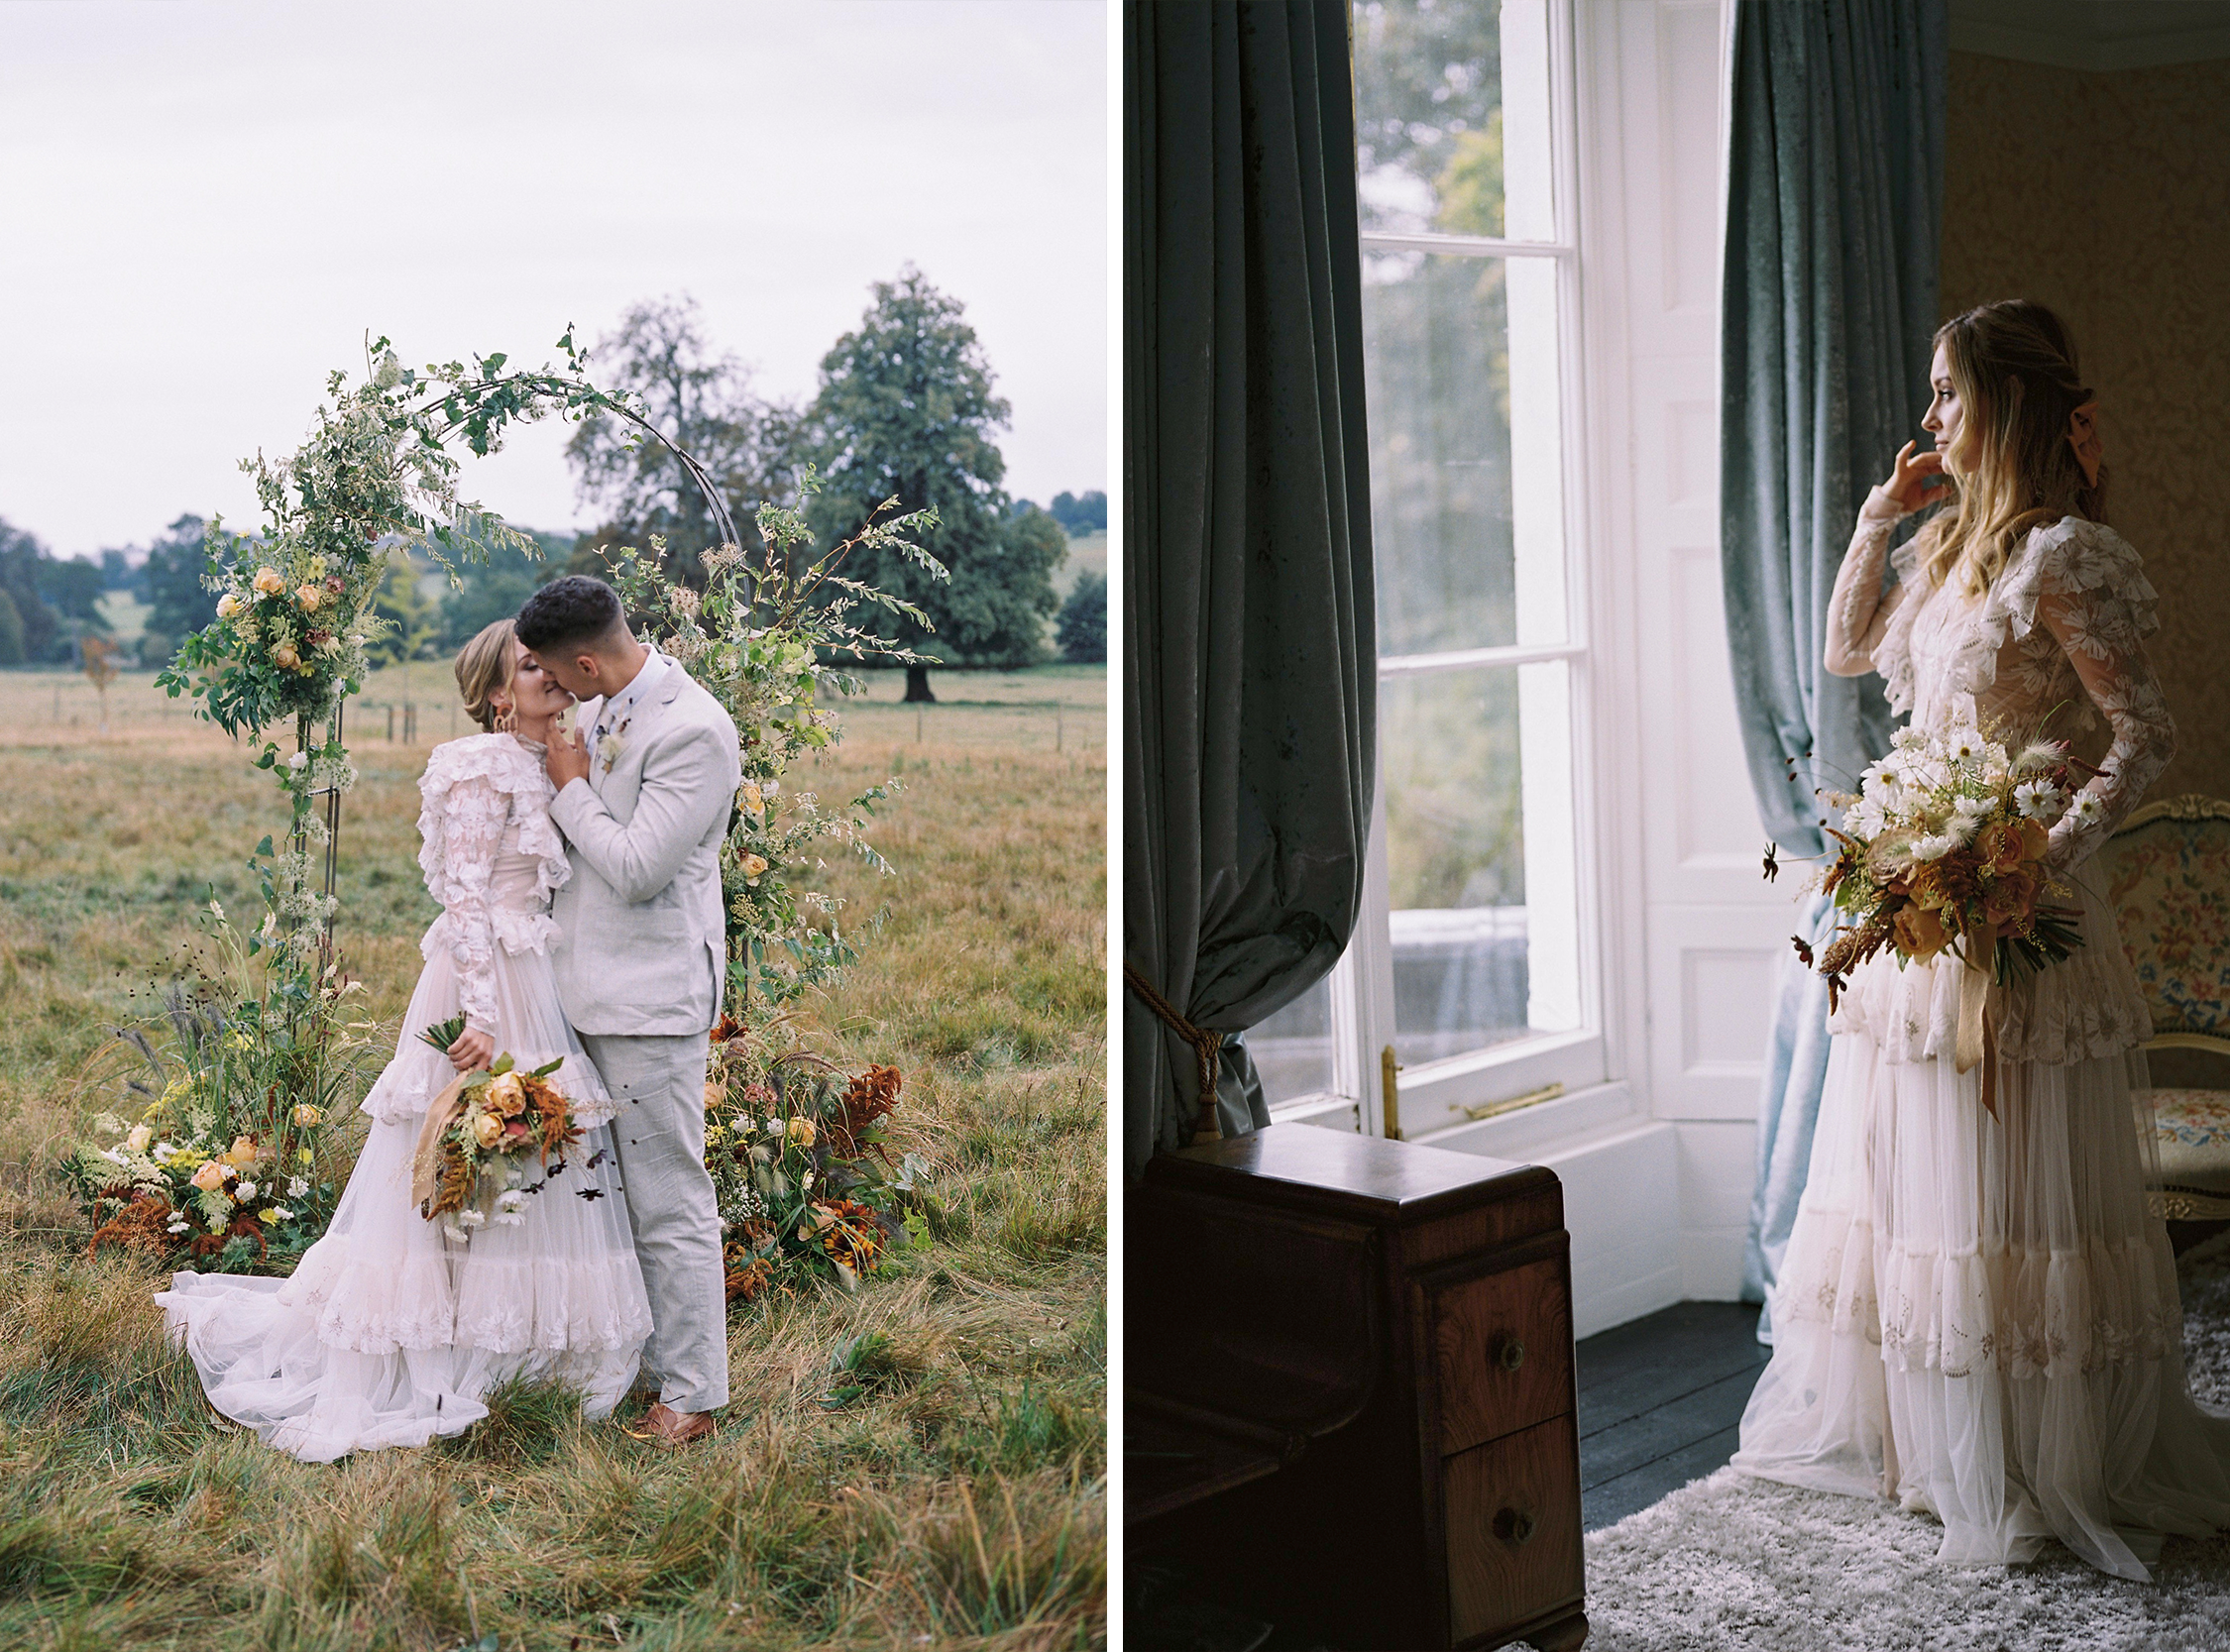 Couple in country side and bride looking out the window